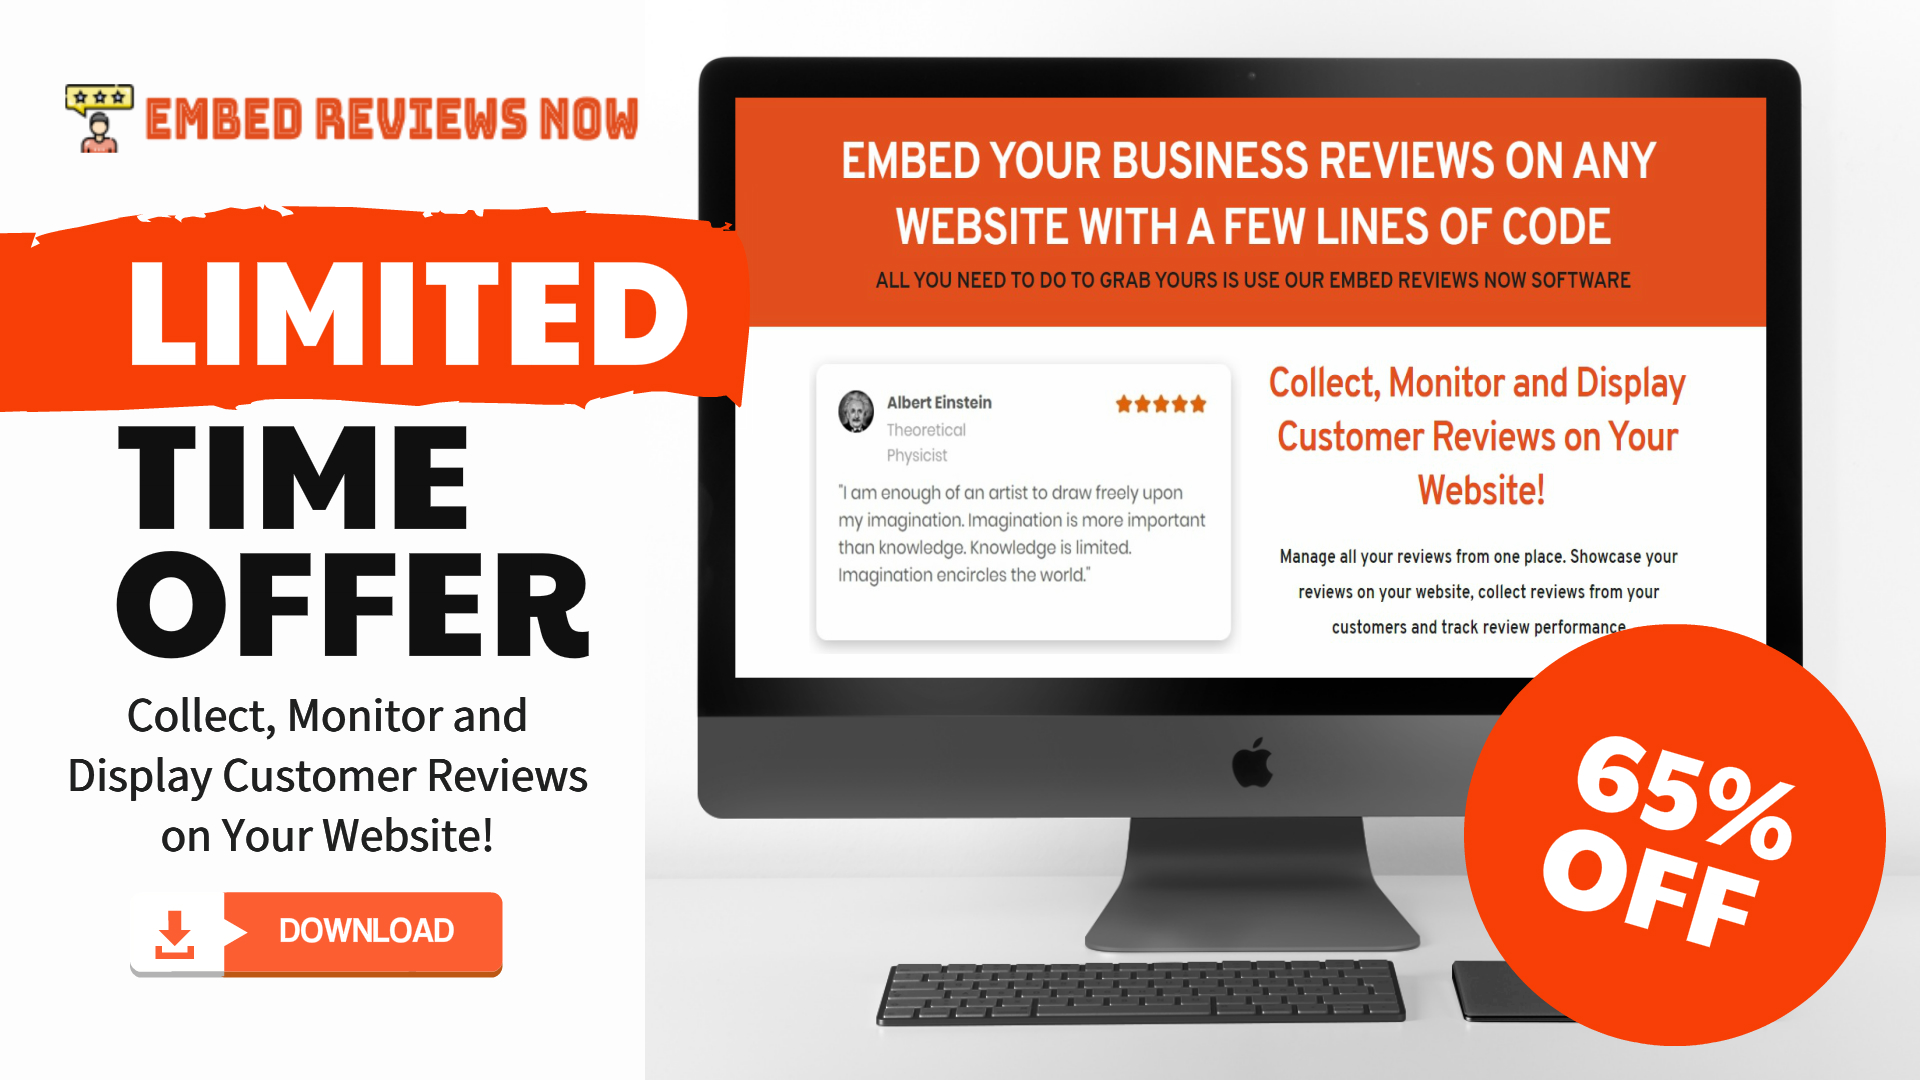 EMBED REVIEWS NOW Offers A Complete Platform To Embed Business Reviews On The Website